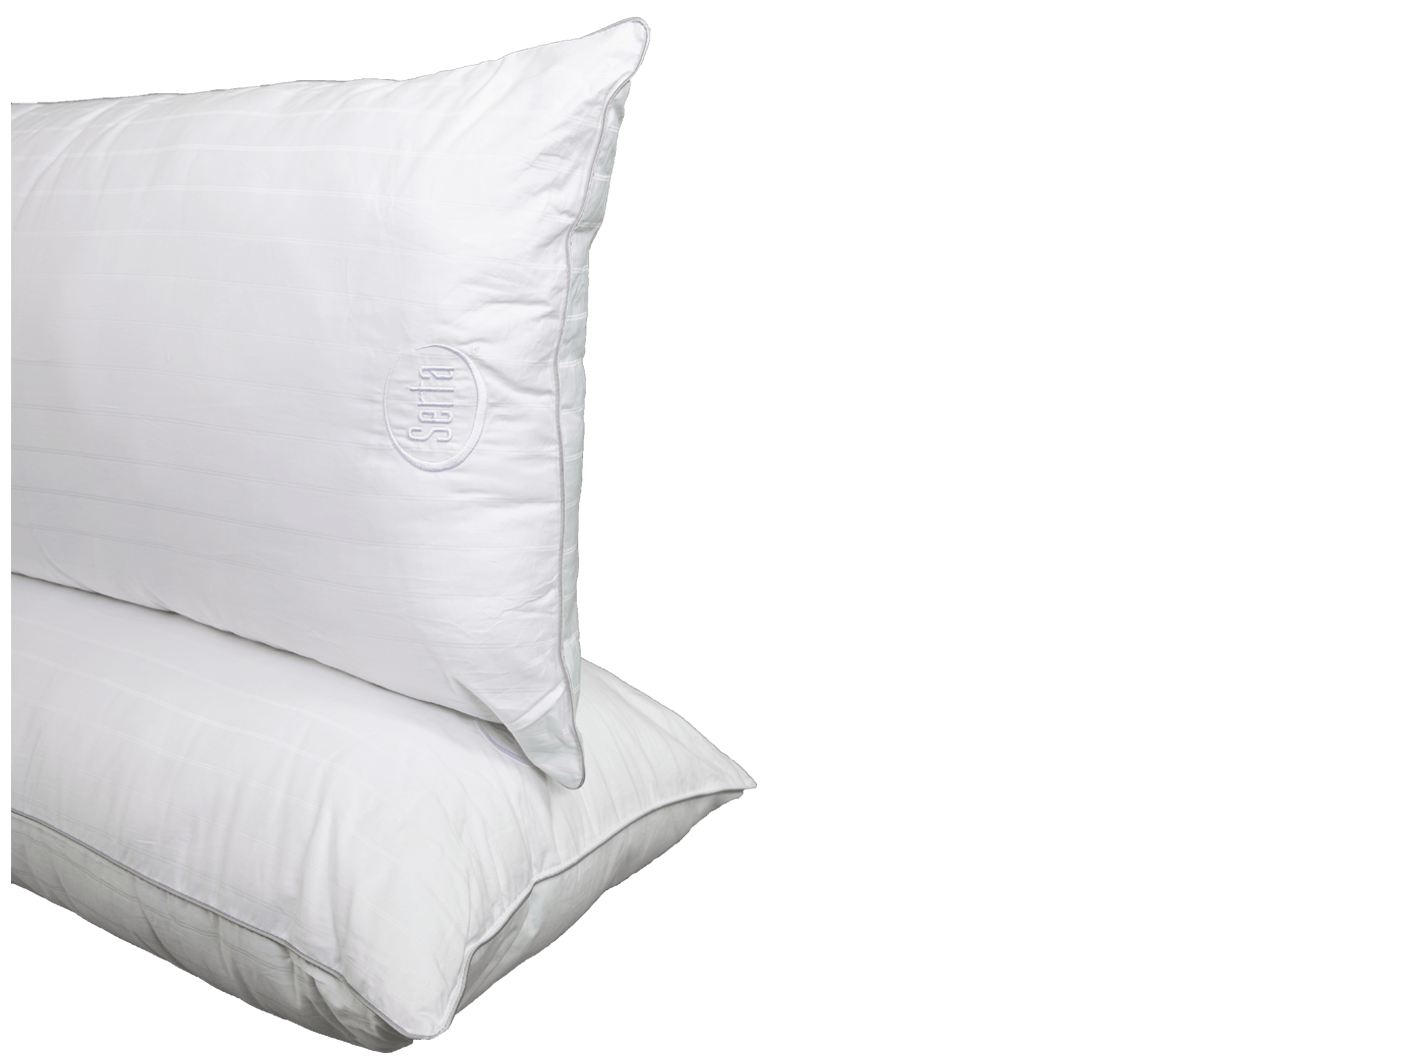 FREE SHIPPING 2 Serta Perfect Sleeper Queen Size Bed Pillows Soft Cotton Cover